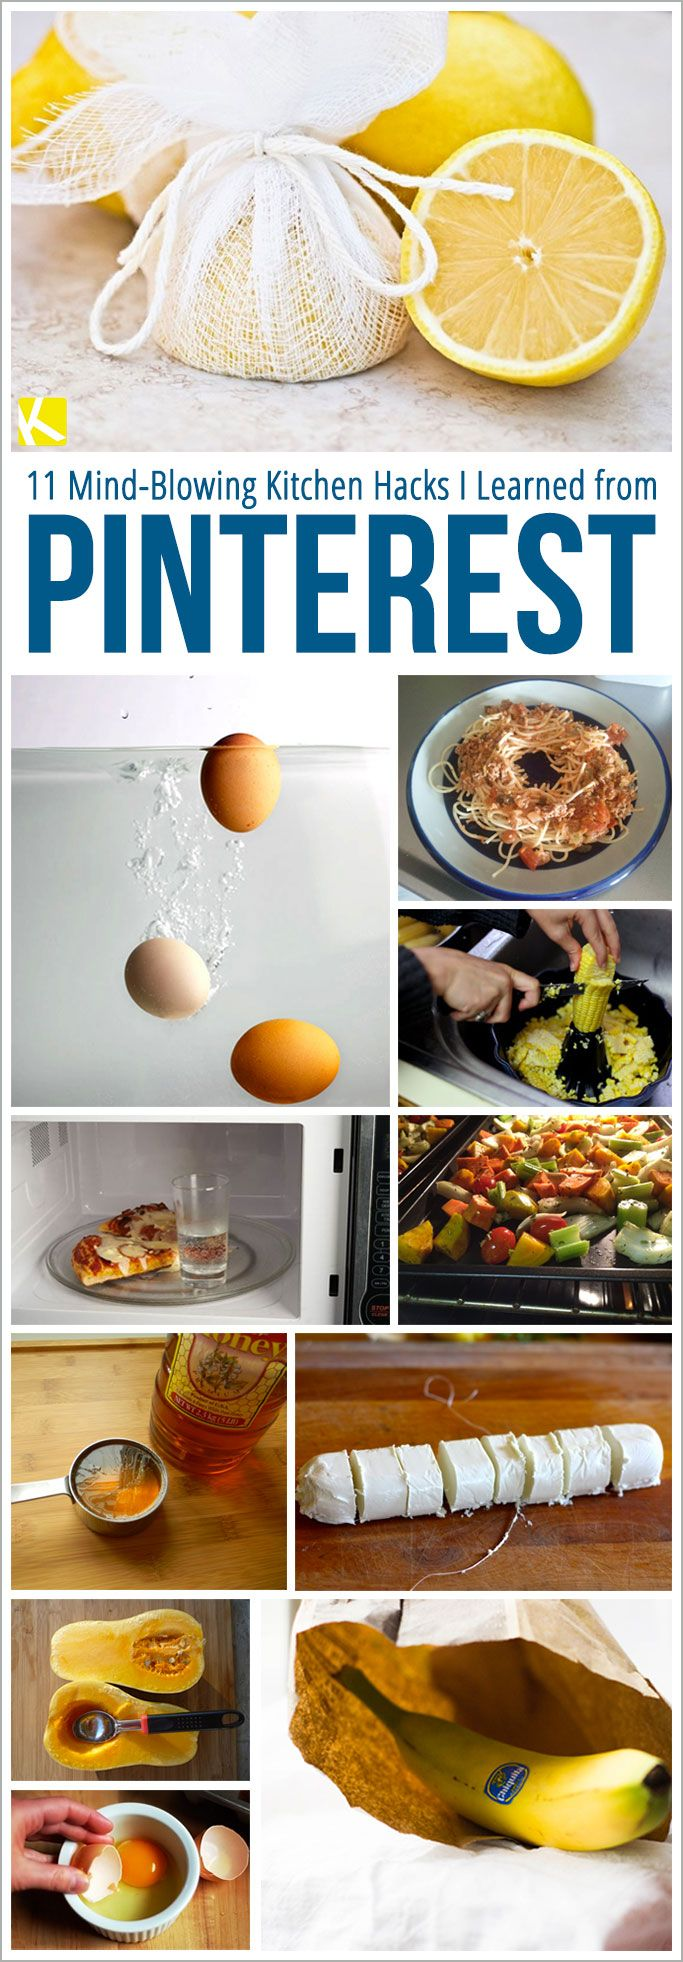 11 Mind-Blowing Kitchen Hacks I Learned from Pinterest